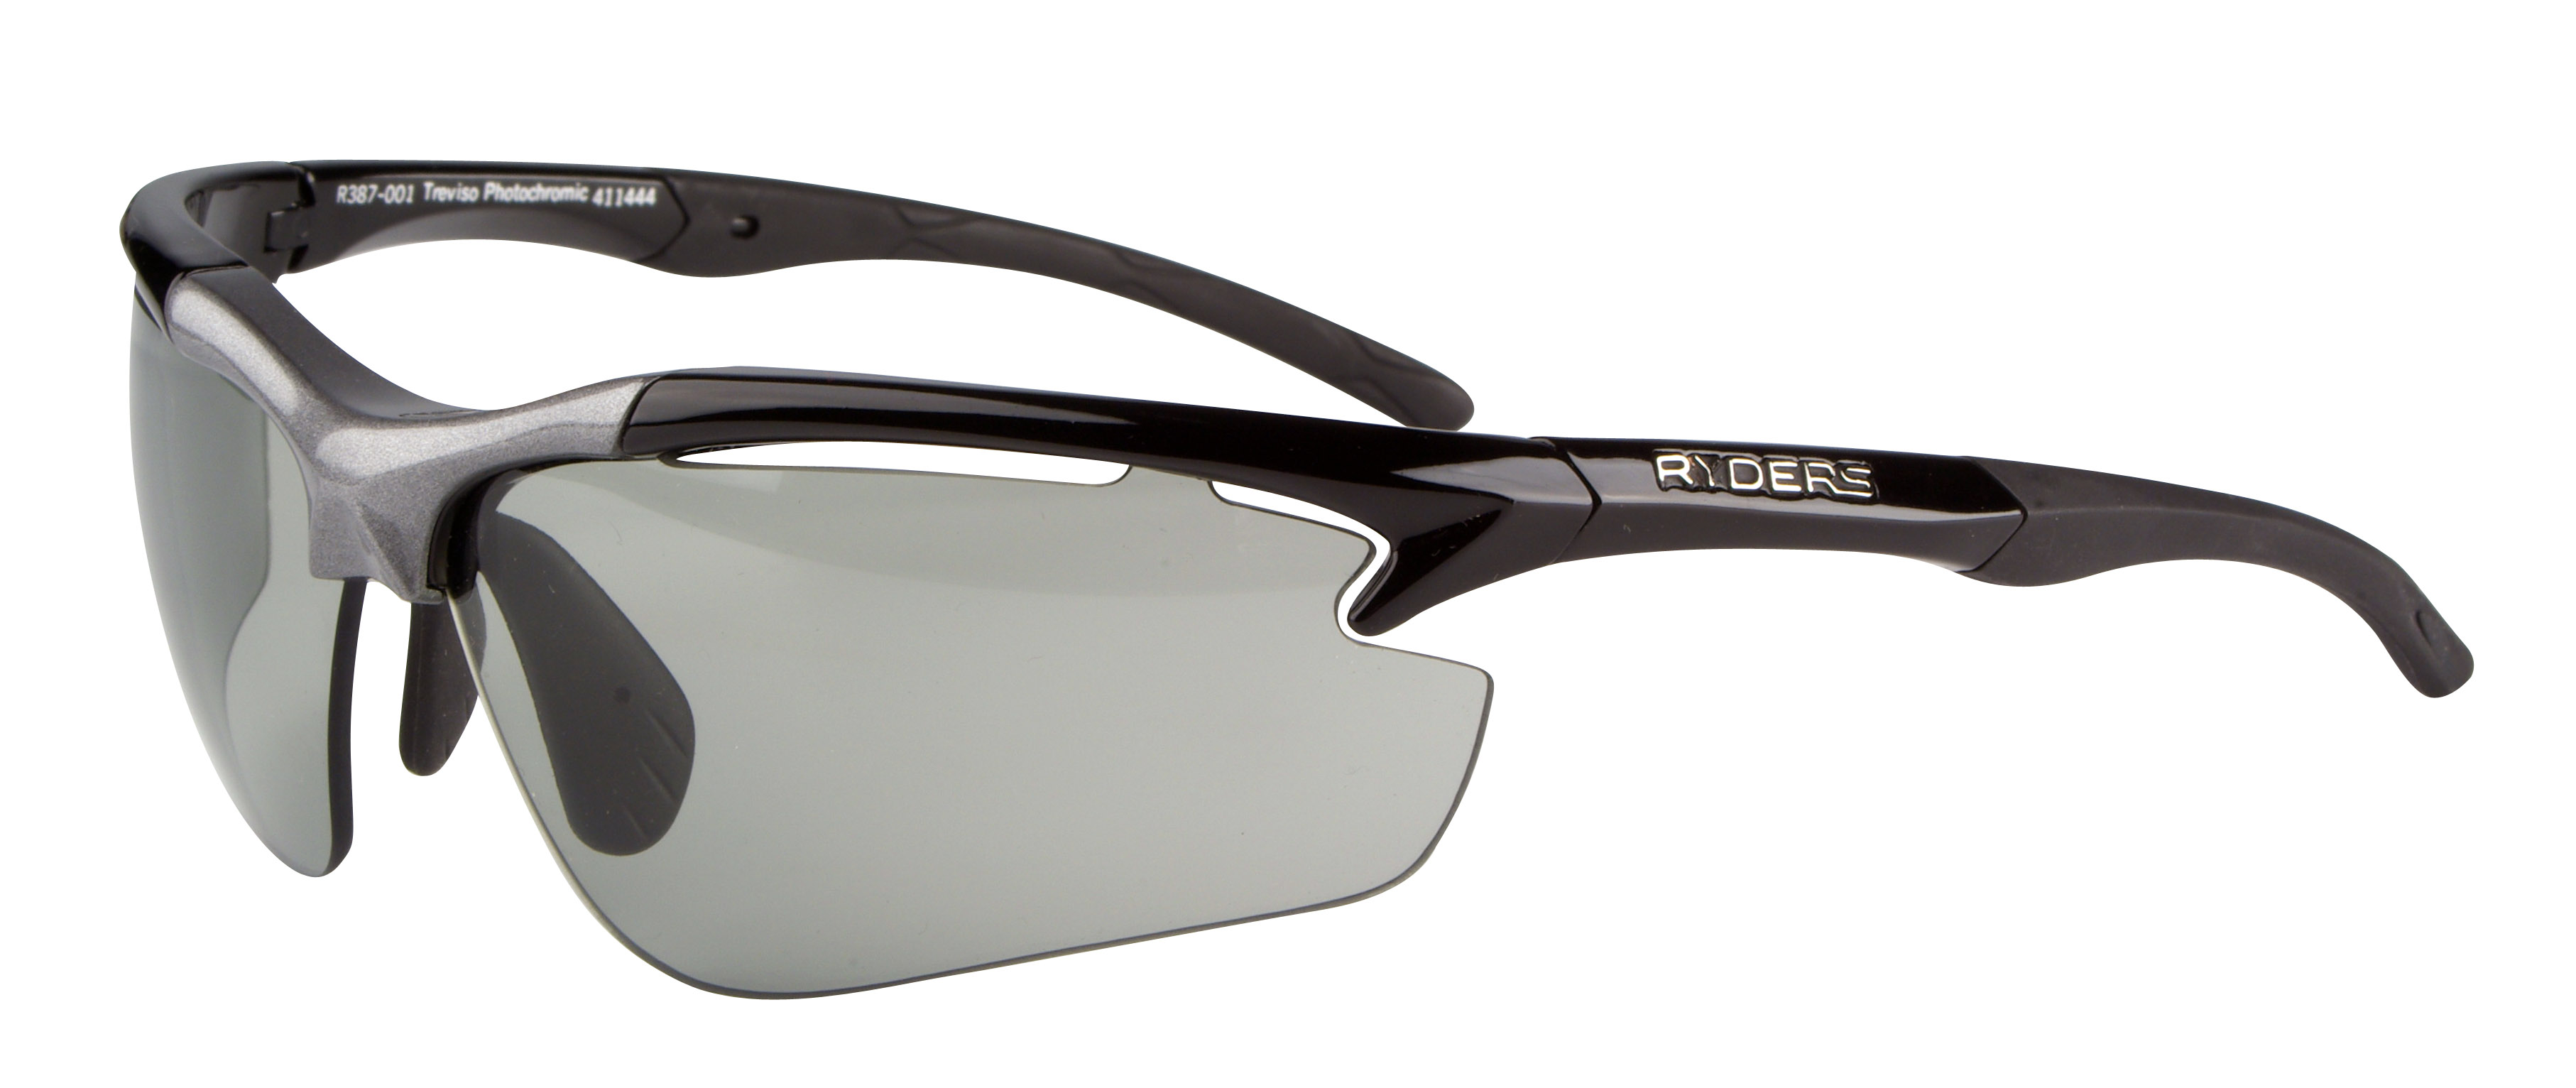 As anyone who has read my review of the Revision Sawfly glasses knows, I'm a fanatic about eye protection.  On a bicycle, losing vision even for a second from something getting in your eyes can cause a disastrous crash.  In mountain biking, that's a particularly serious concern–mud flying everywhere. Good...